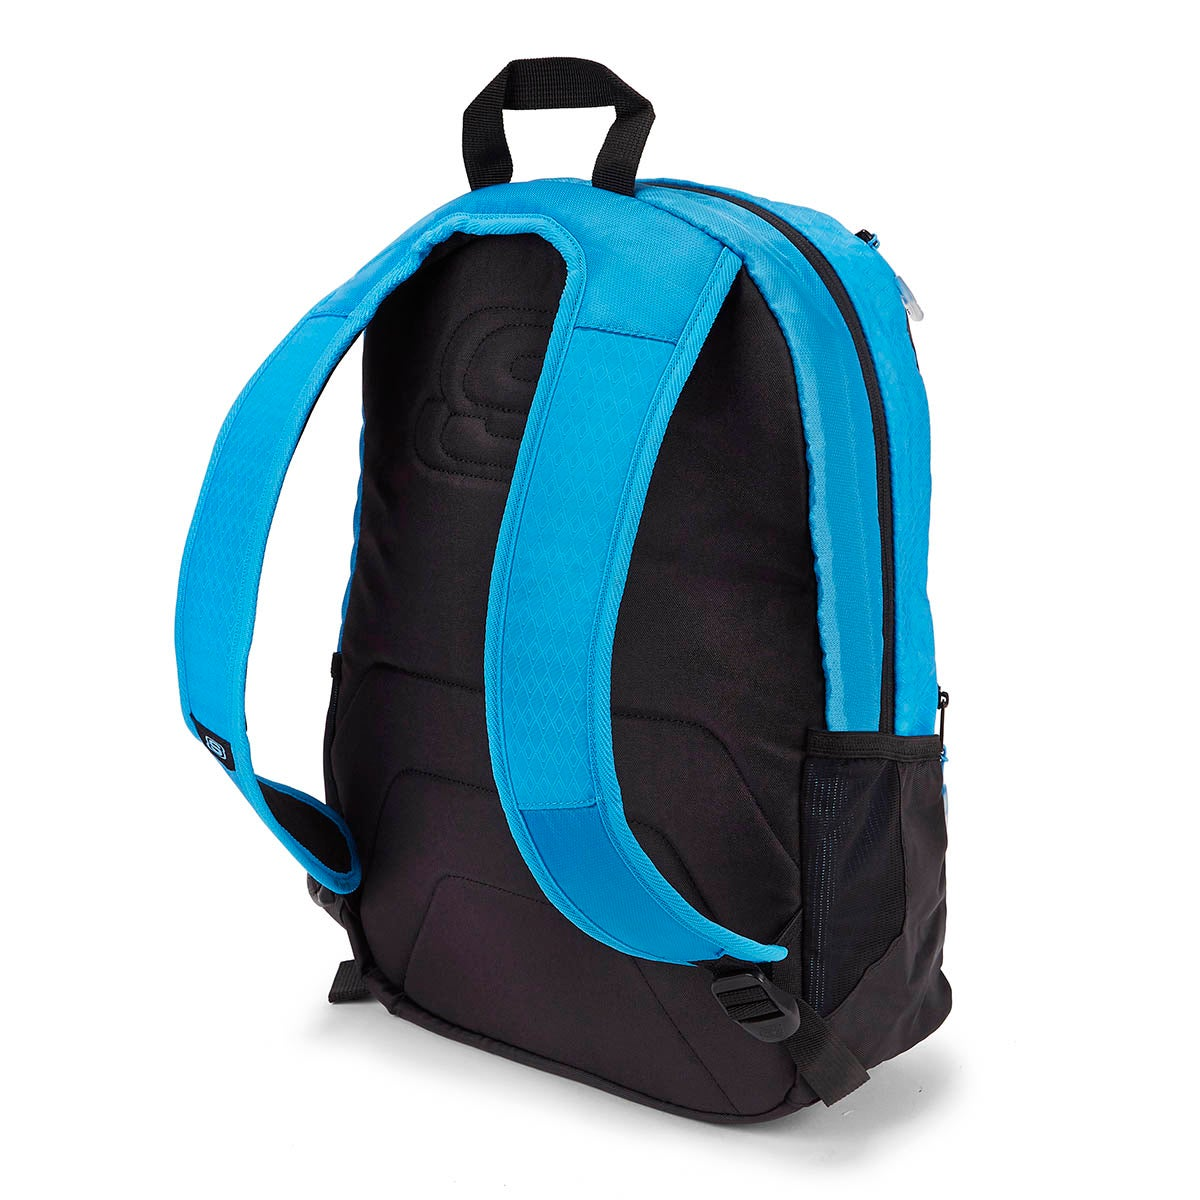 Unisex Speedway Overdrive blue backpack